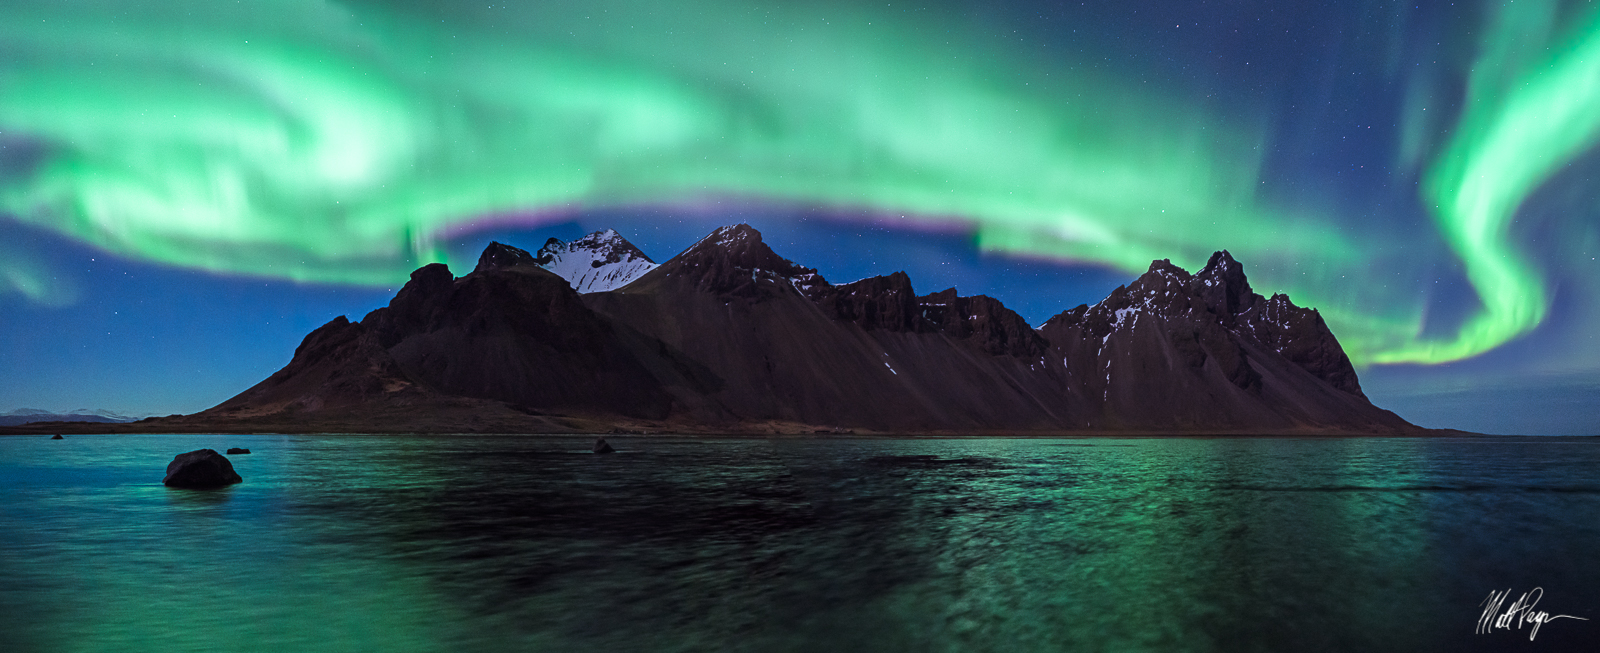 Aurora Borealis, Beach, Iceland, Landscape, Mountains, Night, Nightscape, Reflection, Stars, Vestrahorn, beautiful, Stokksnes, photo